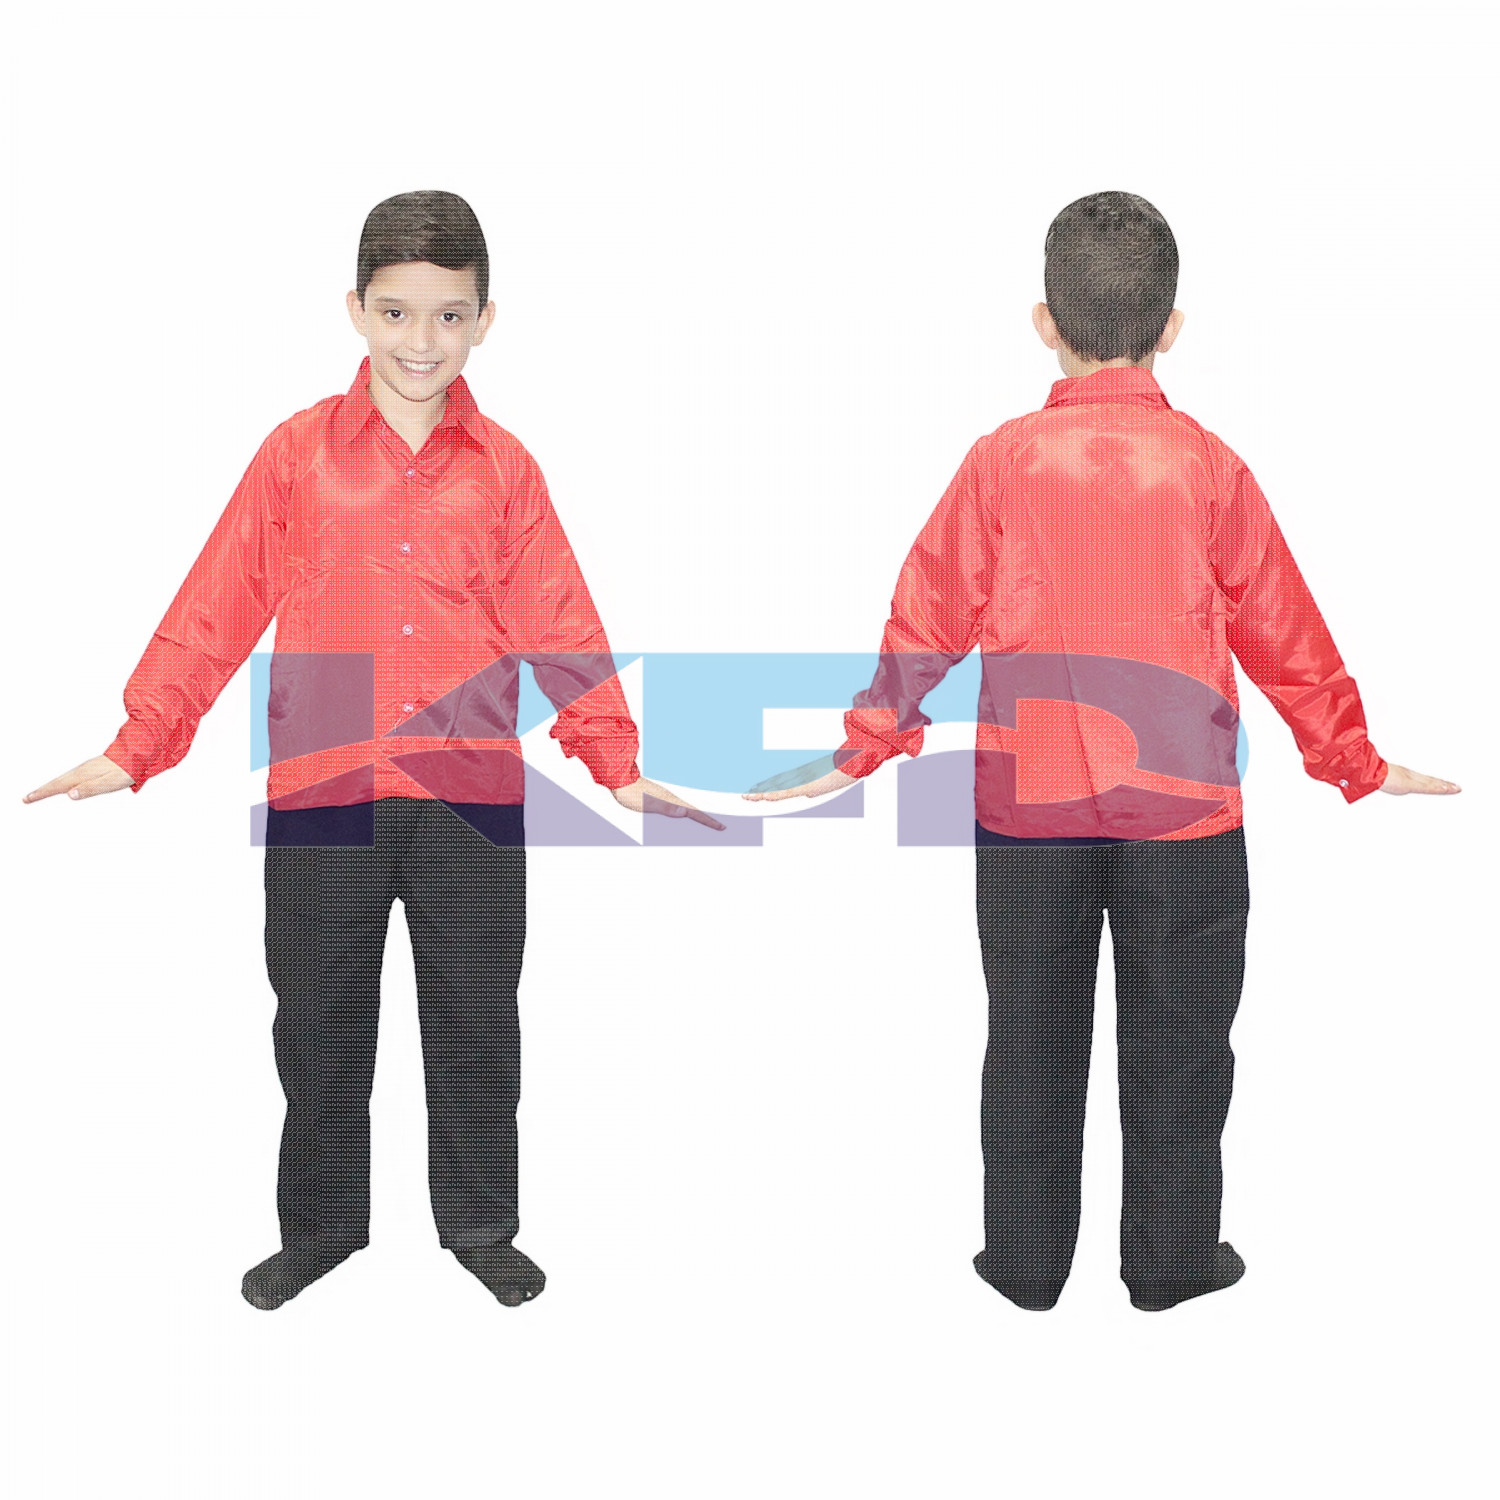 Red shirt fancy dress for kids,Western Costume for Annual function/Theme Party/Competition/Stage Shows/Birthday Party Dress laten dance/salsa dance